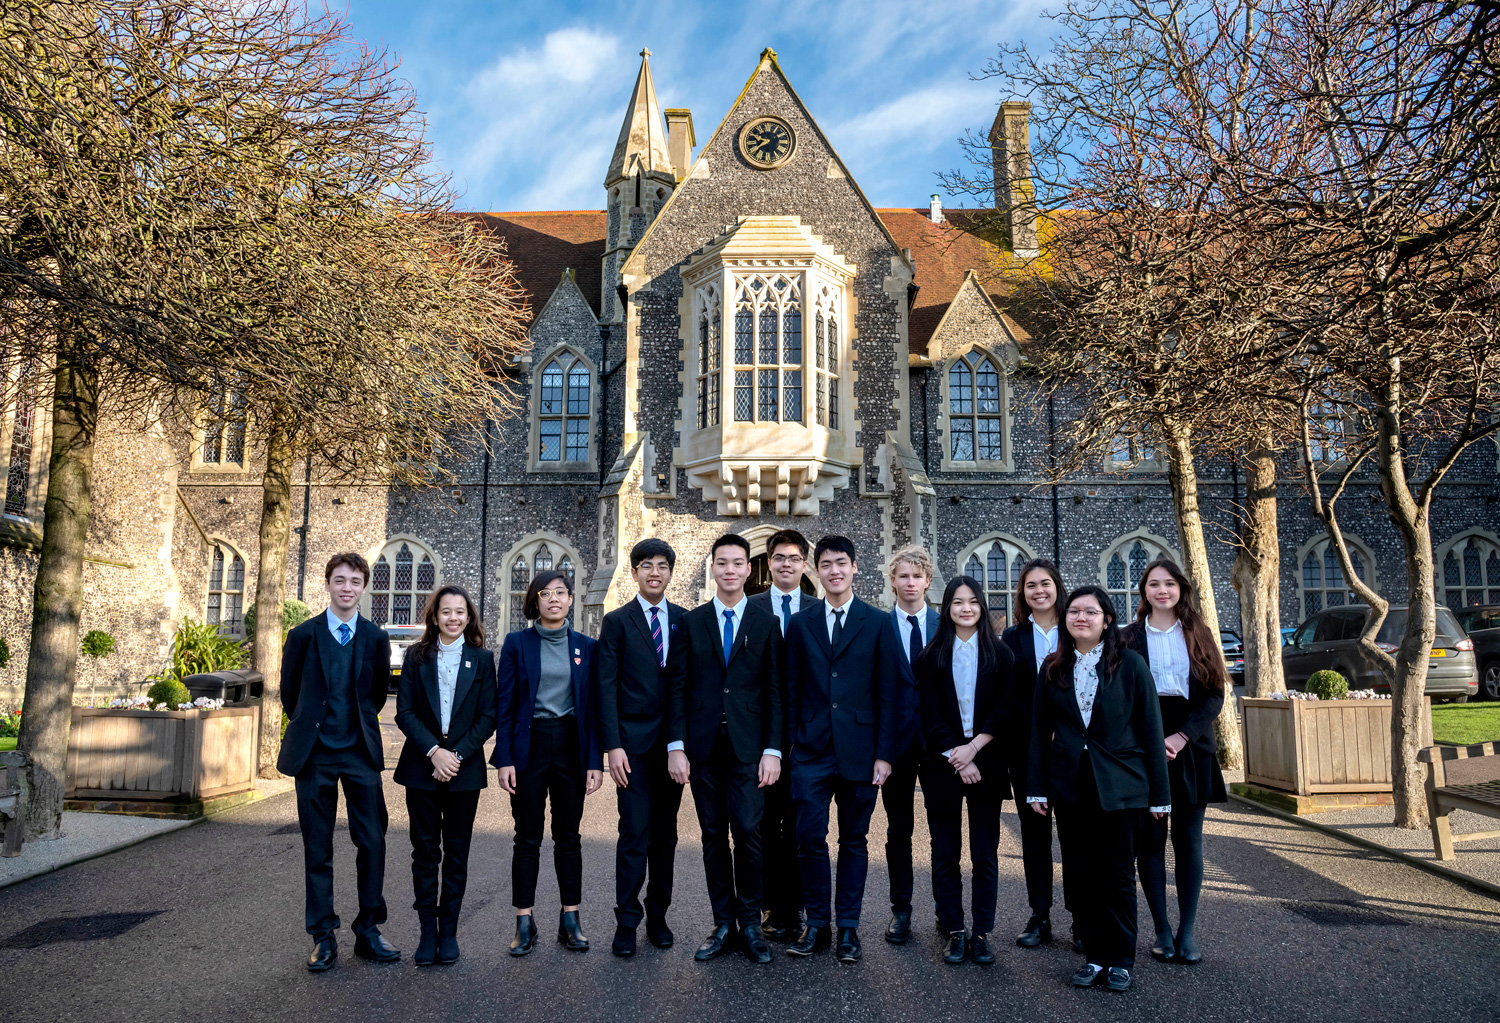 Brighton College UK was recently named as England's School of the Decade by The Sunday Times.